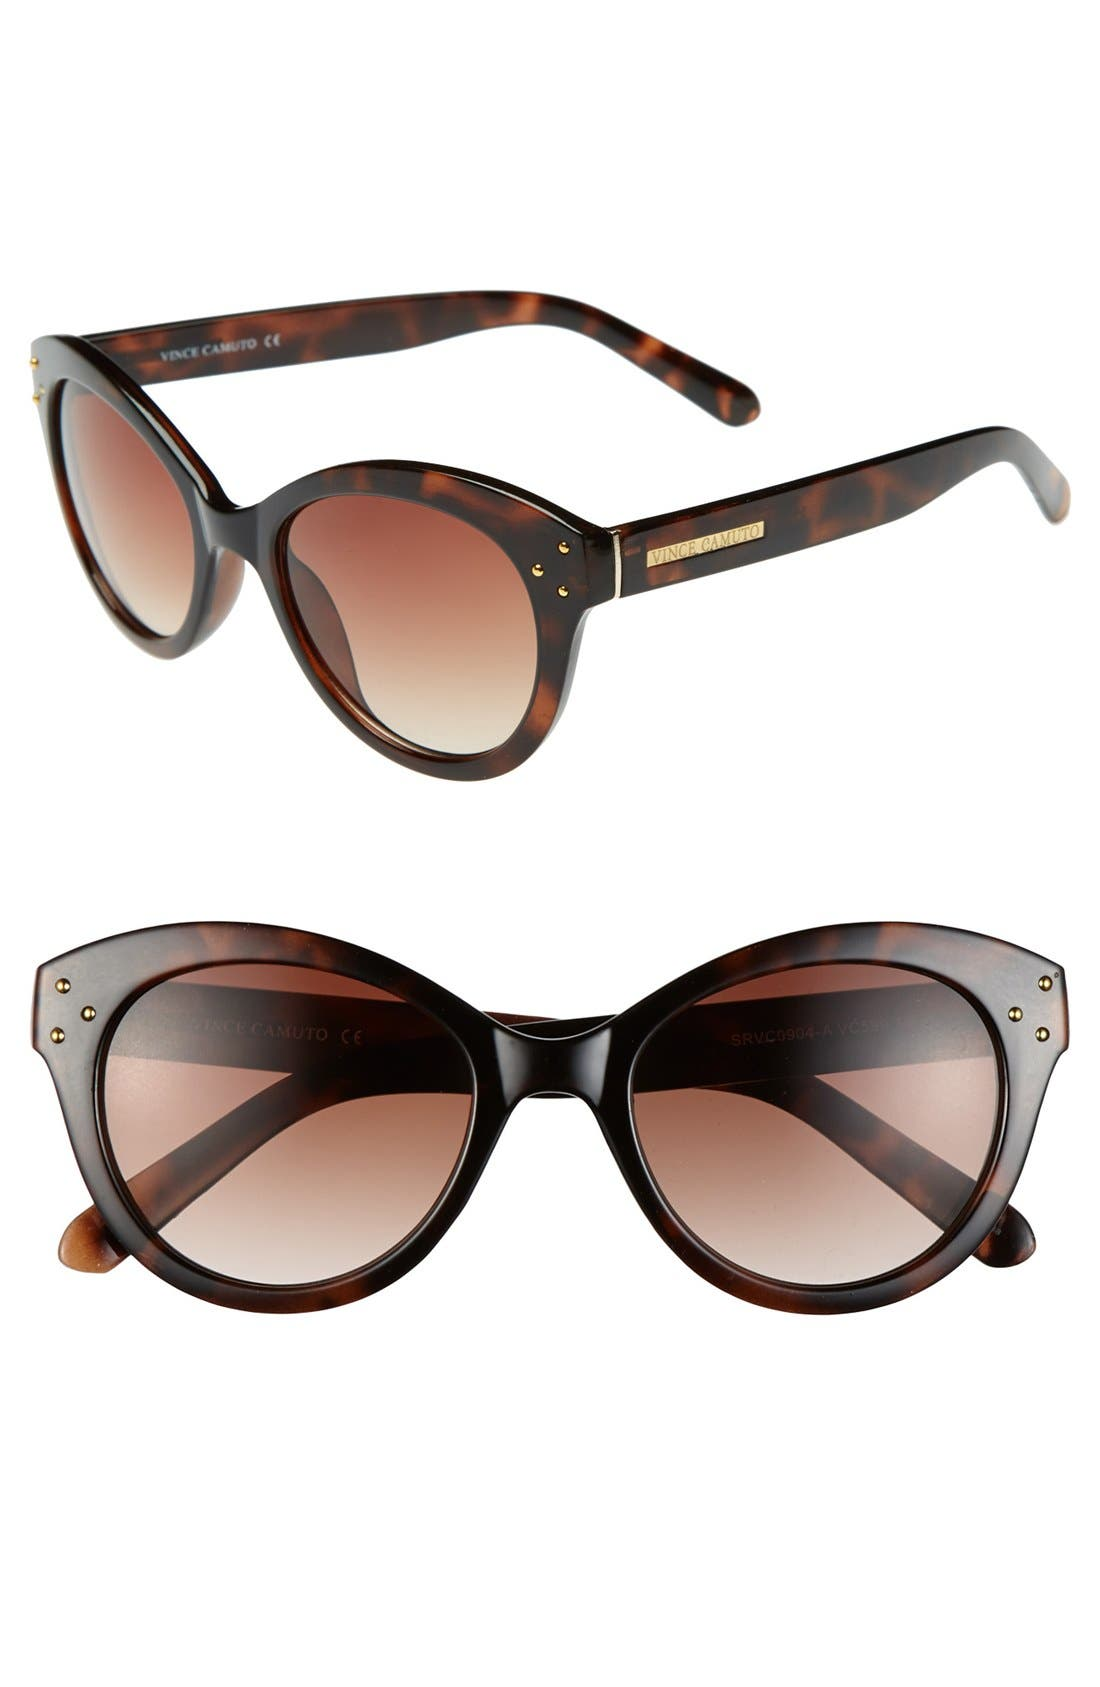 Main Image - Vince Camuto 51mm Retro Cat Eye Sunglasses